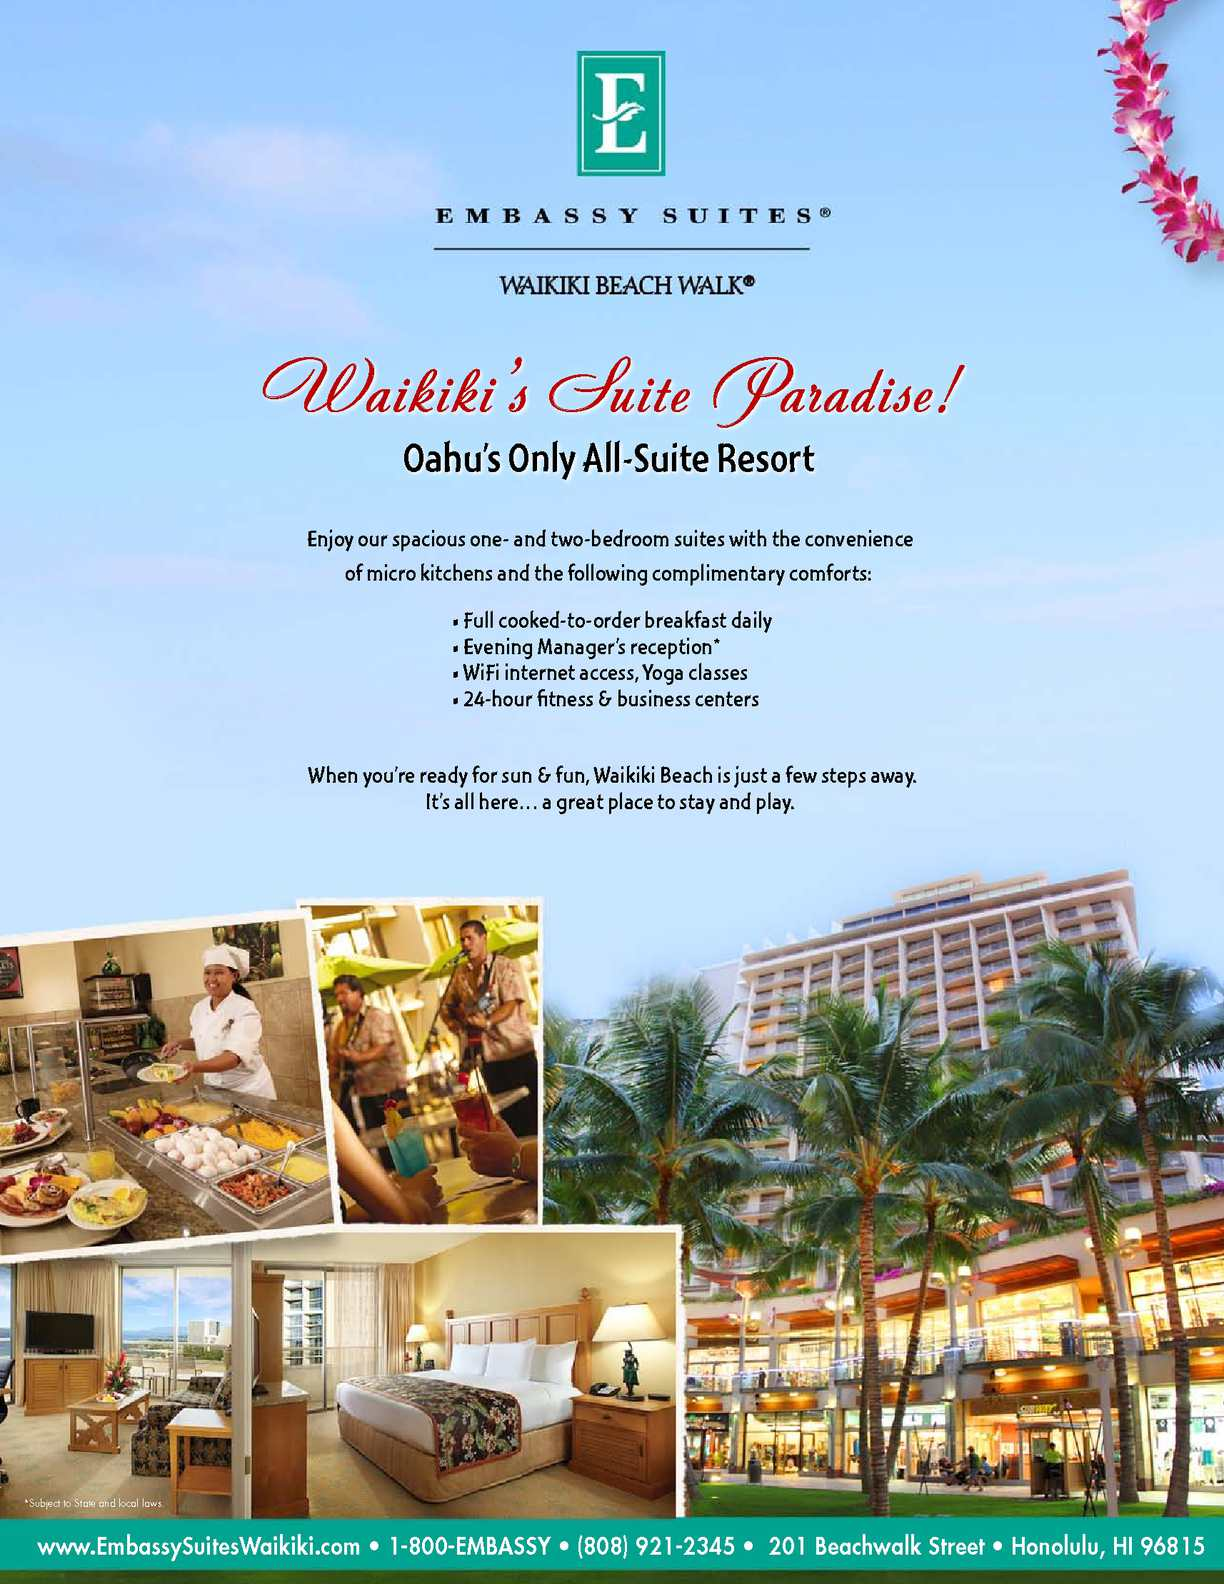 Calameo Embassy Suites Waikiki Newsletter March 2013